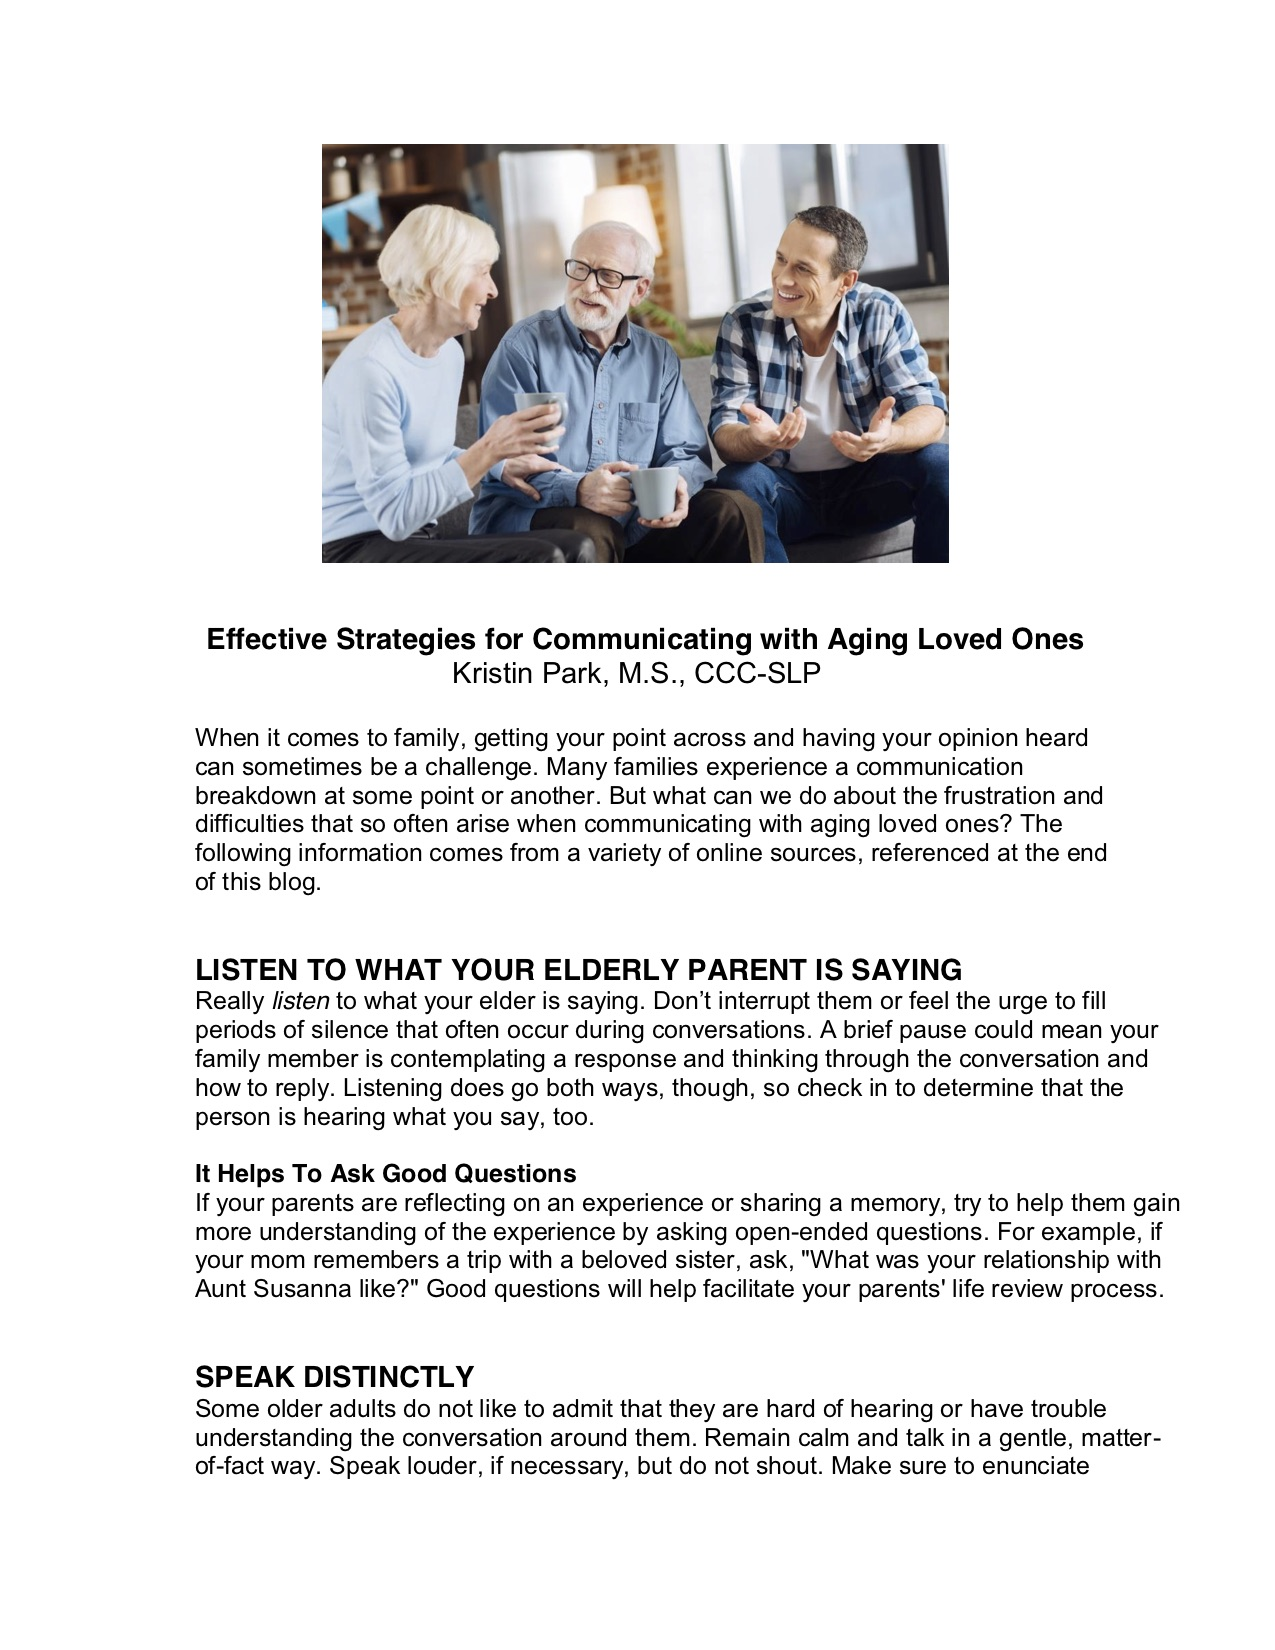 Effective Strategies for Communicating with Aging Loved Ones.jpg